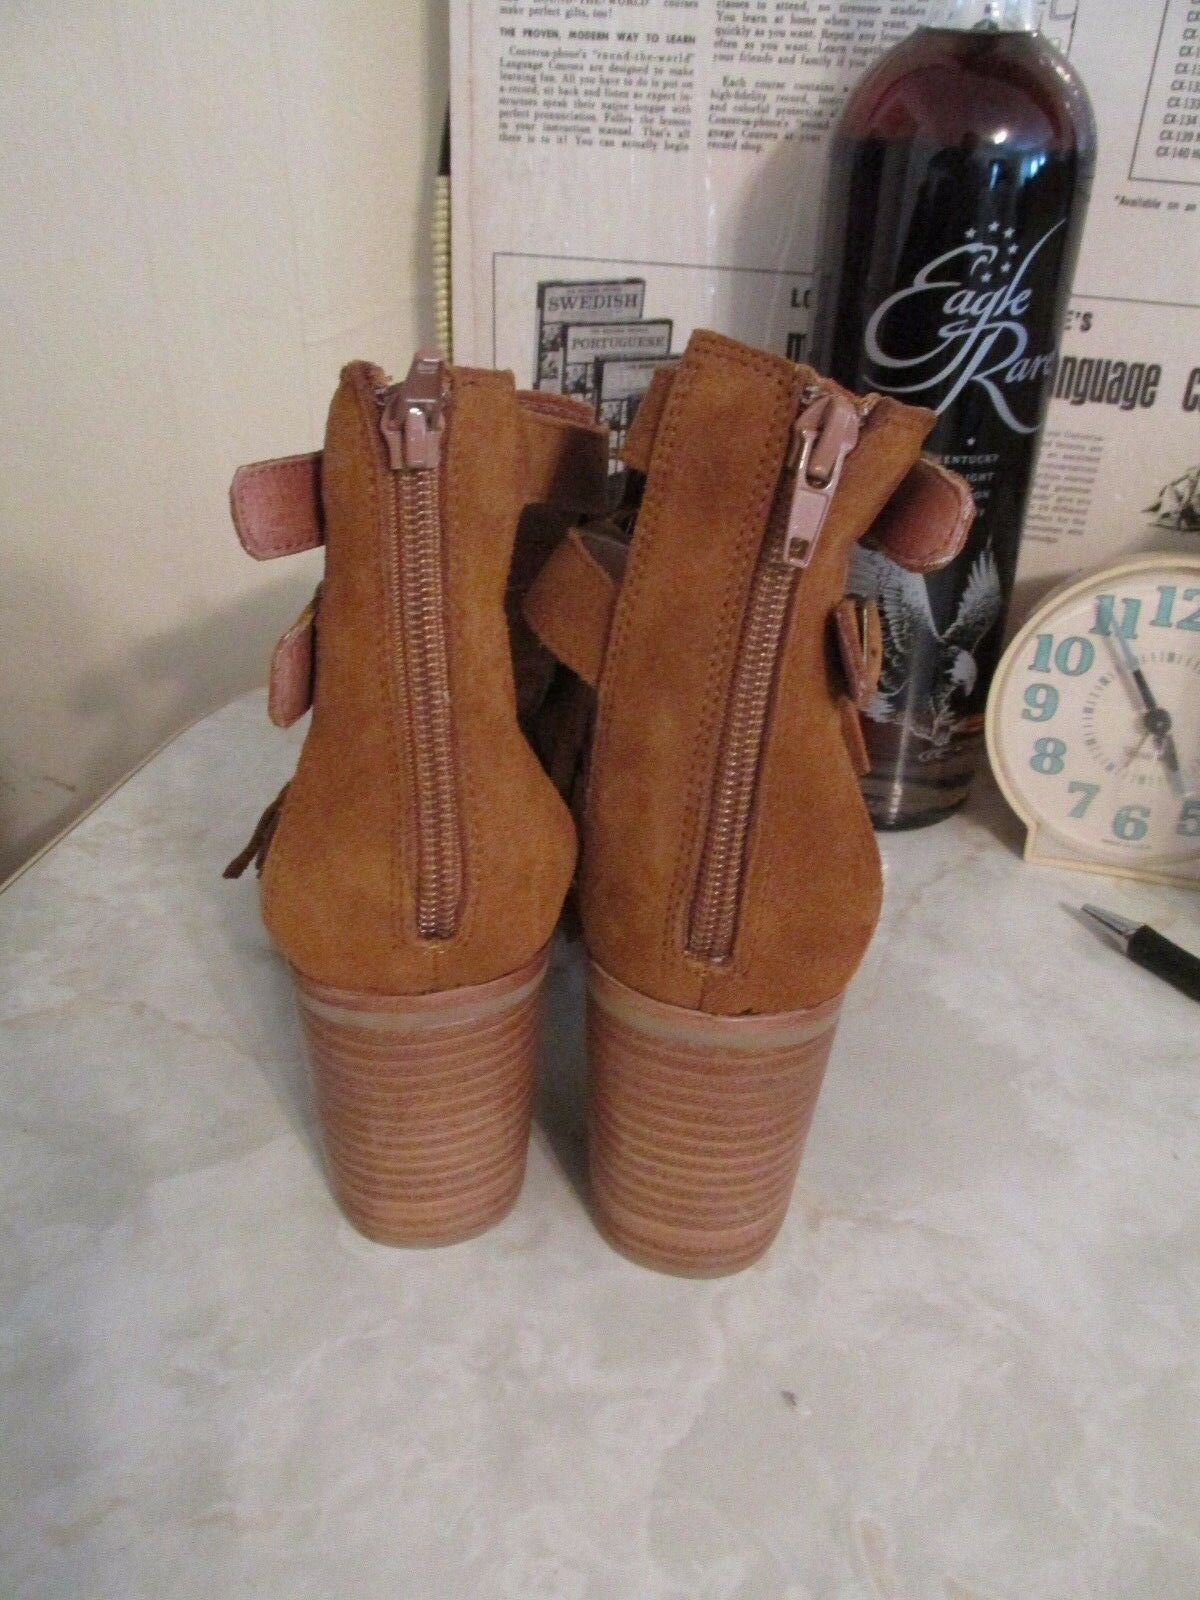 JEFFREY CAMPBELL 7 DODGE FRINGE SANDALS SIZE 7 CAMPBELL NWOB f1df90